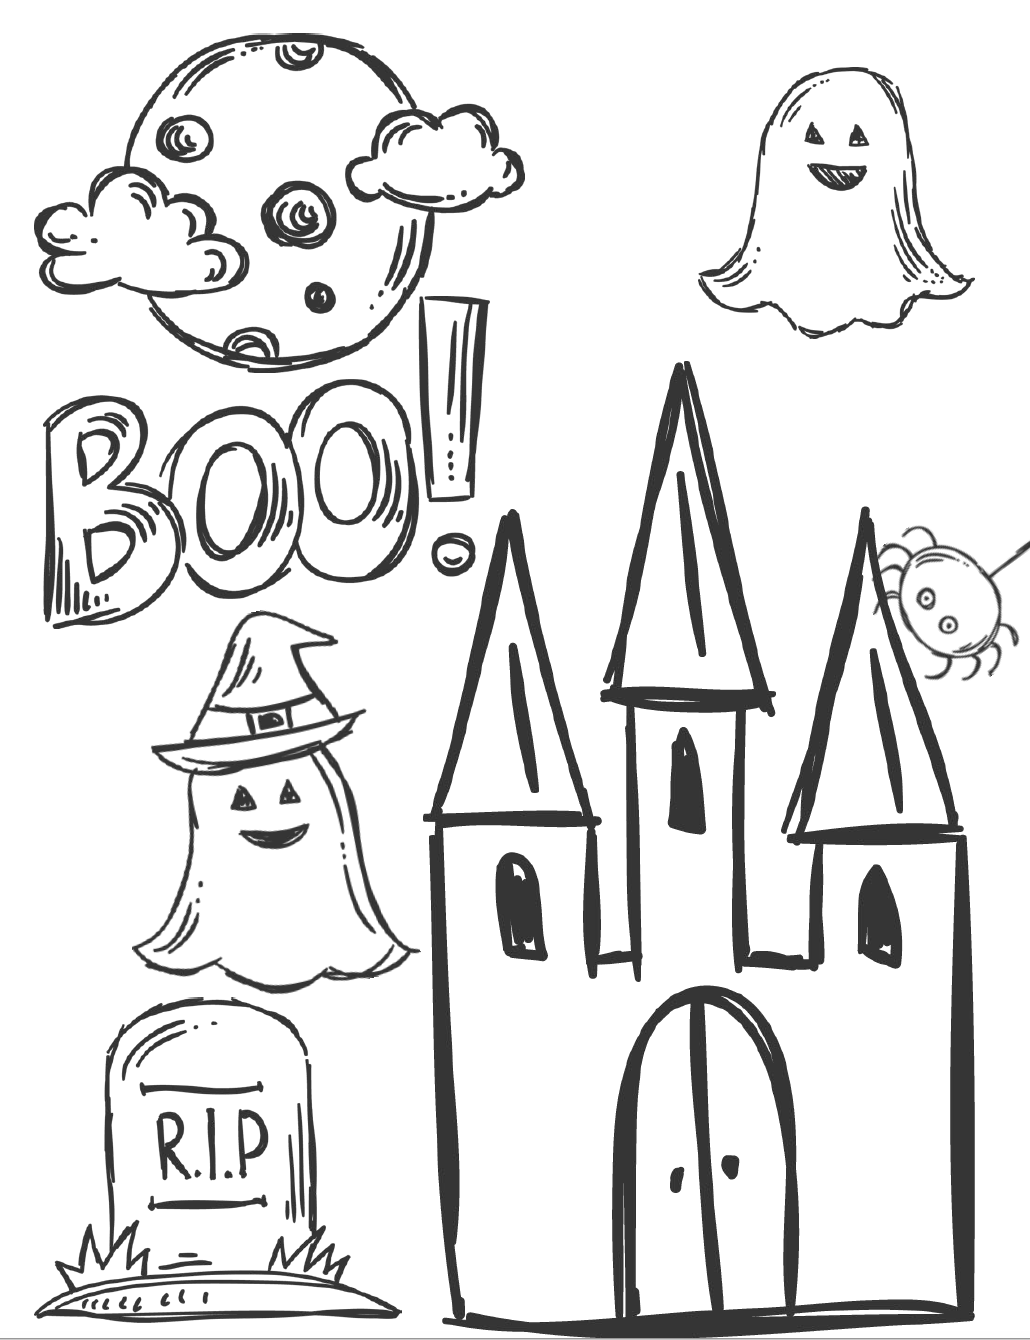 5 Free Printable Halloween Coloring Pages for Kids ...